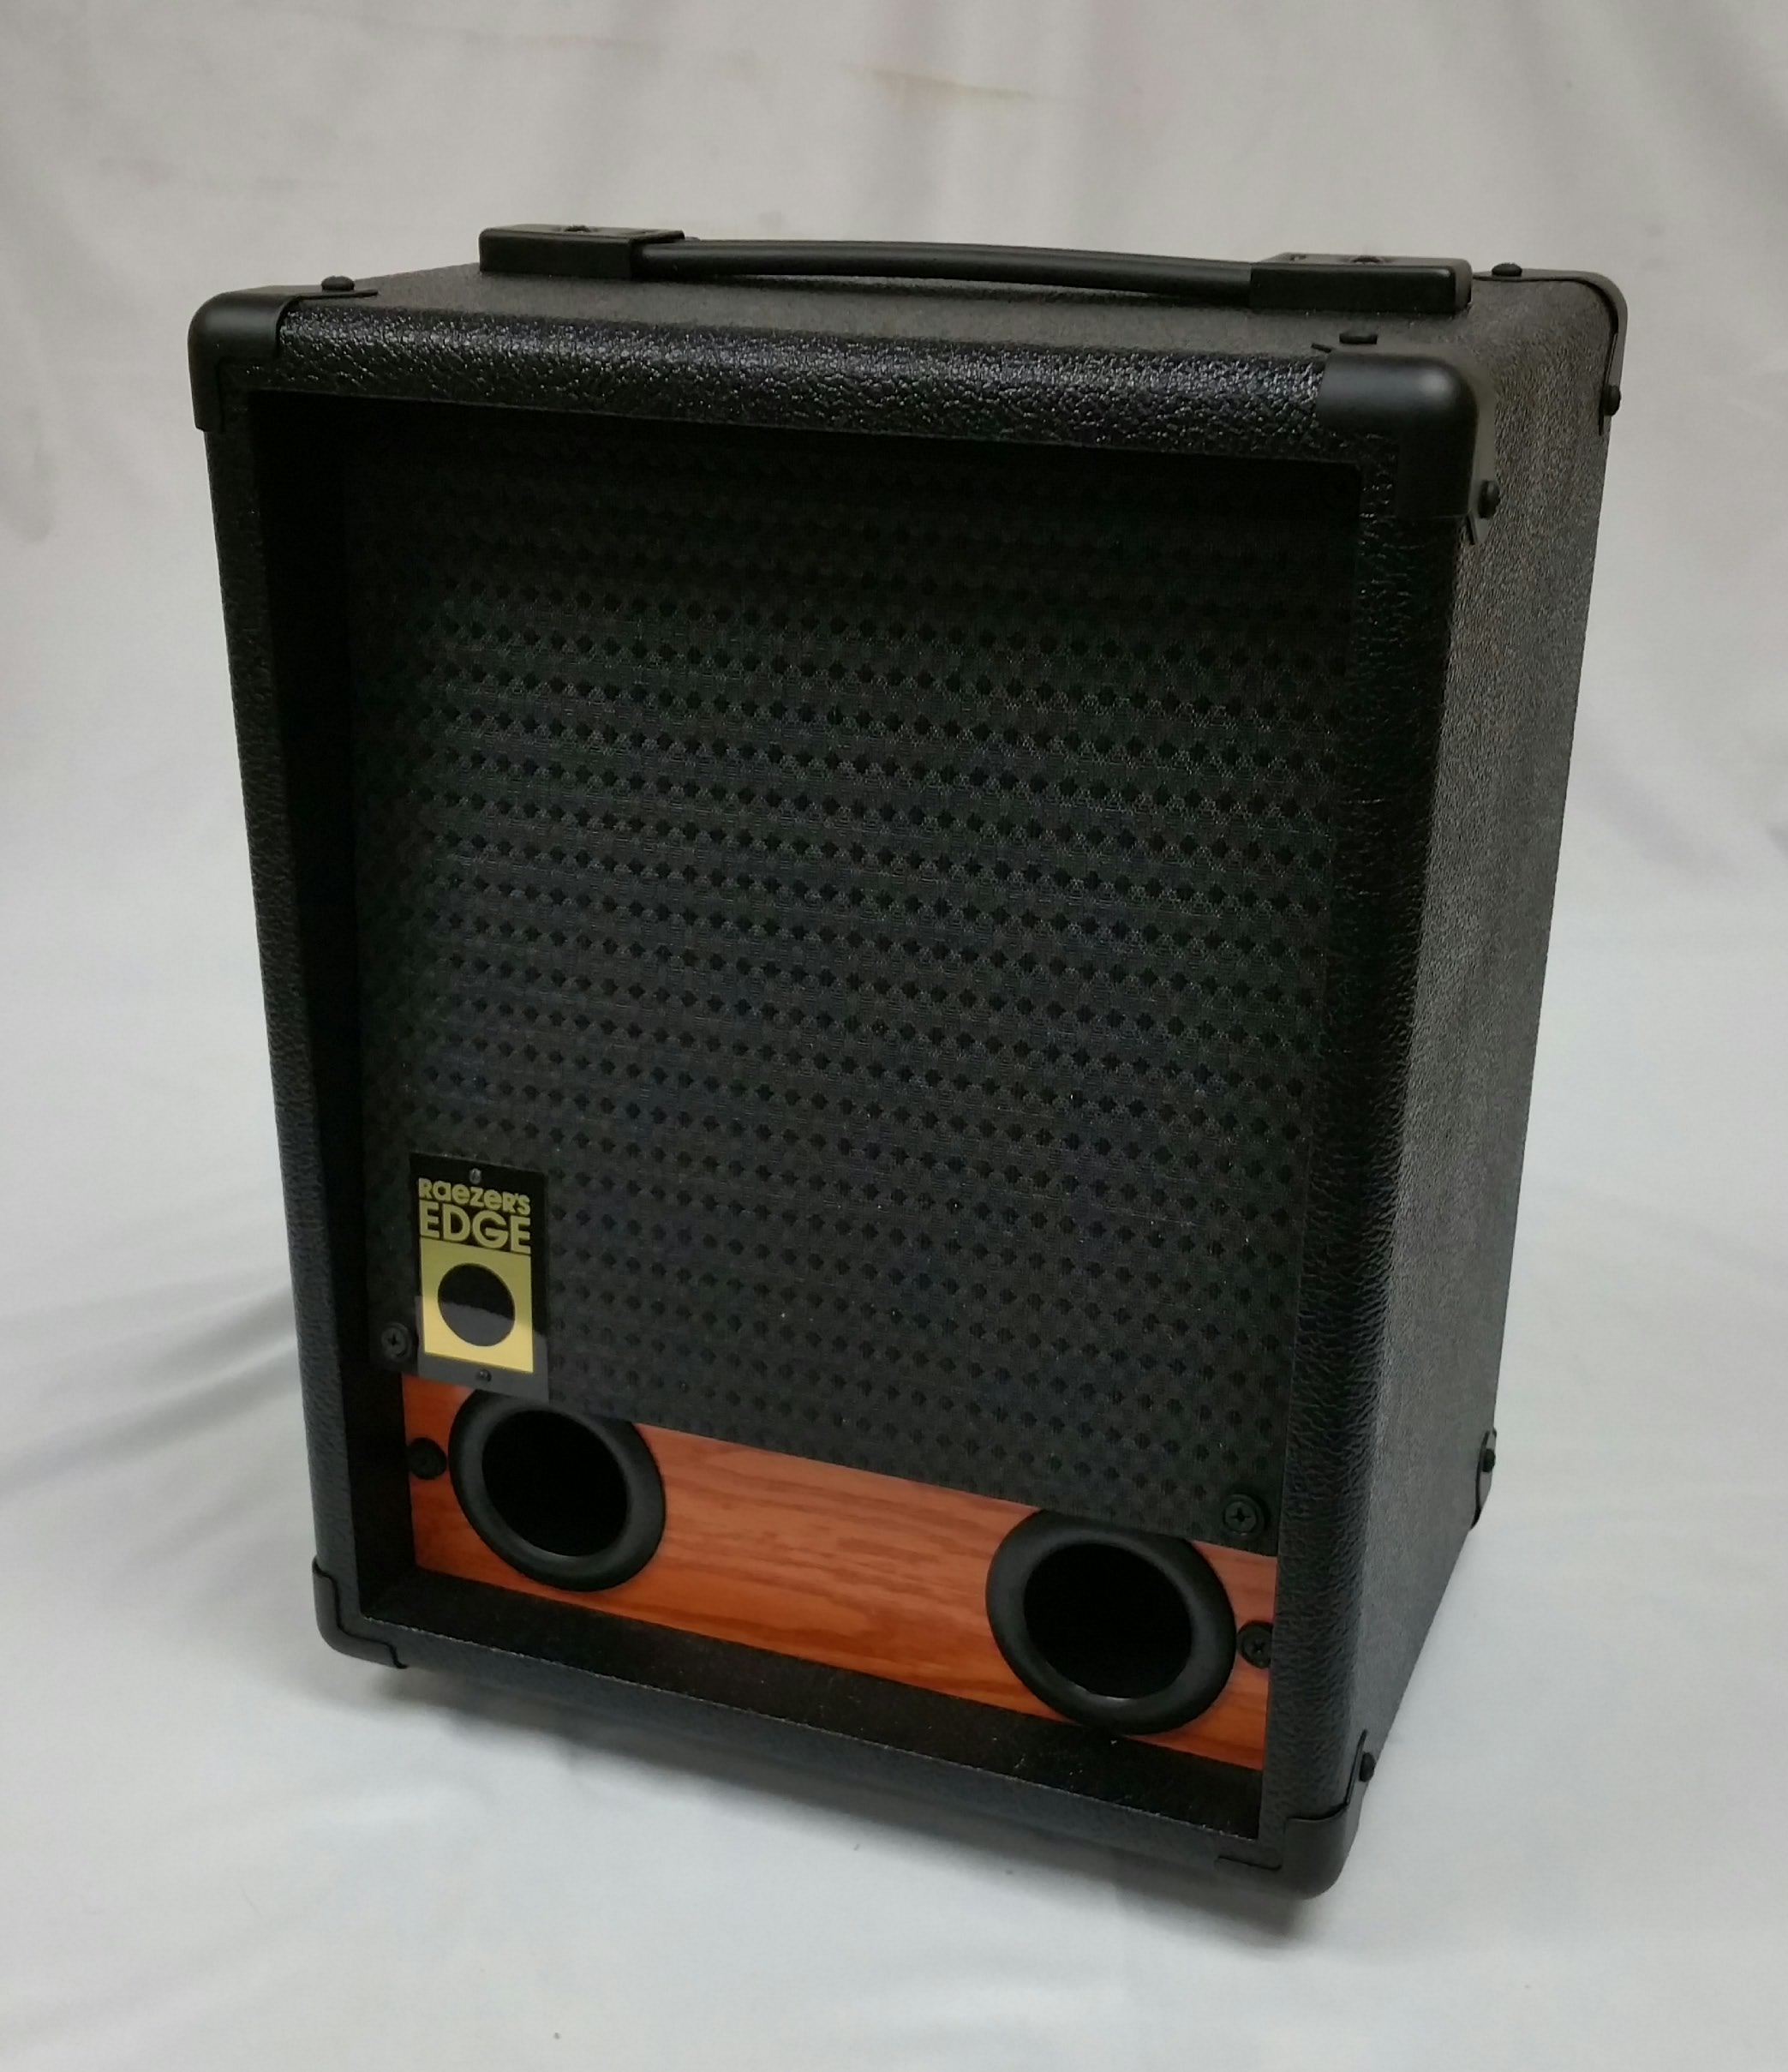 Raezer's Edge NY8 Speaker Cabinet (Includes Cover)